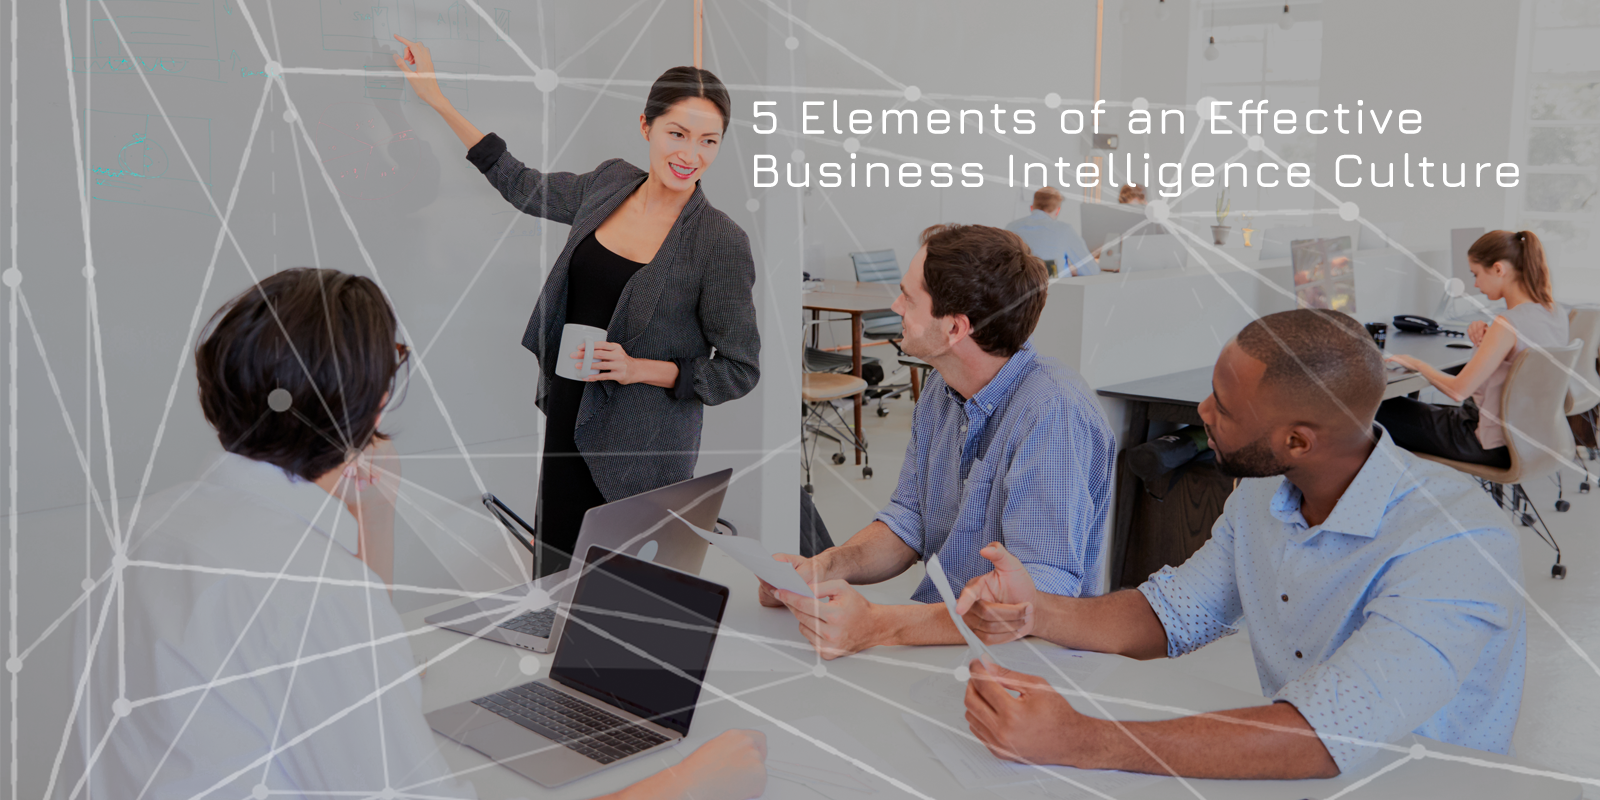 5 Elements of an Effective Business Intelligence Culture